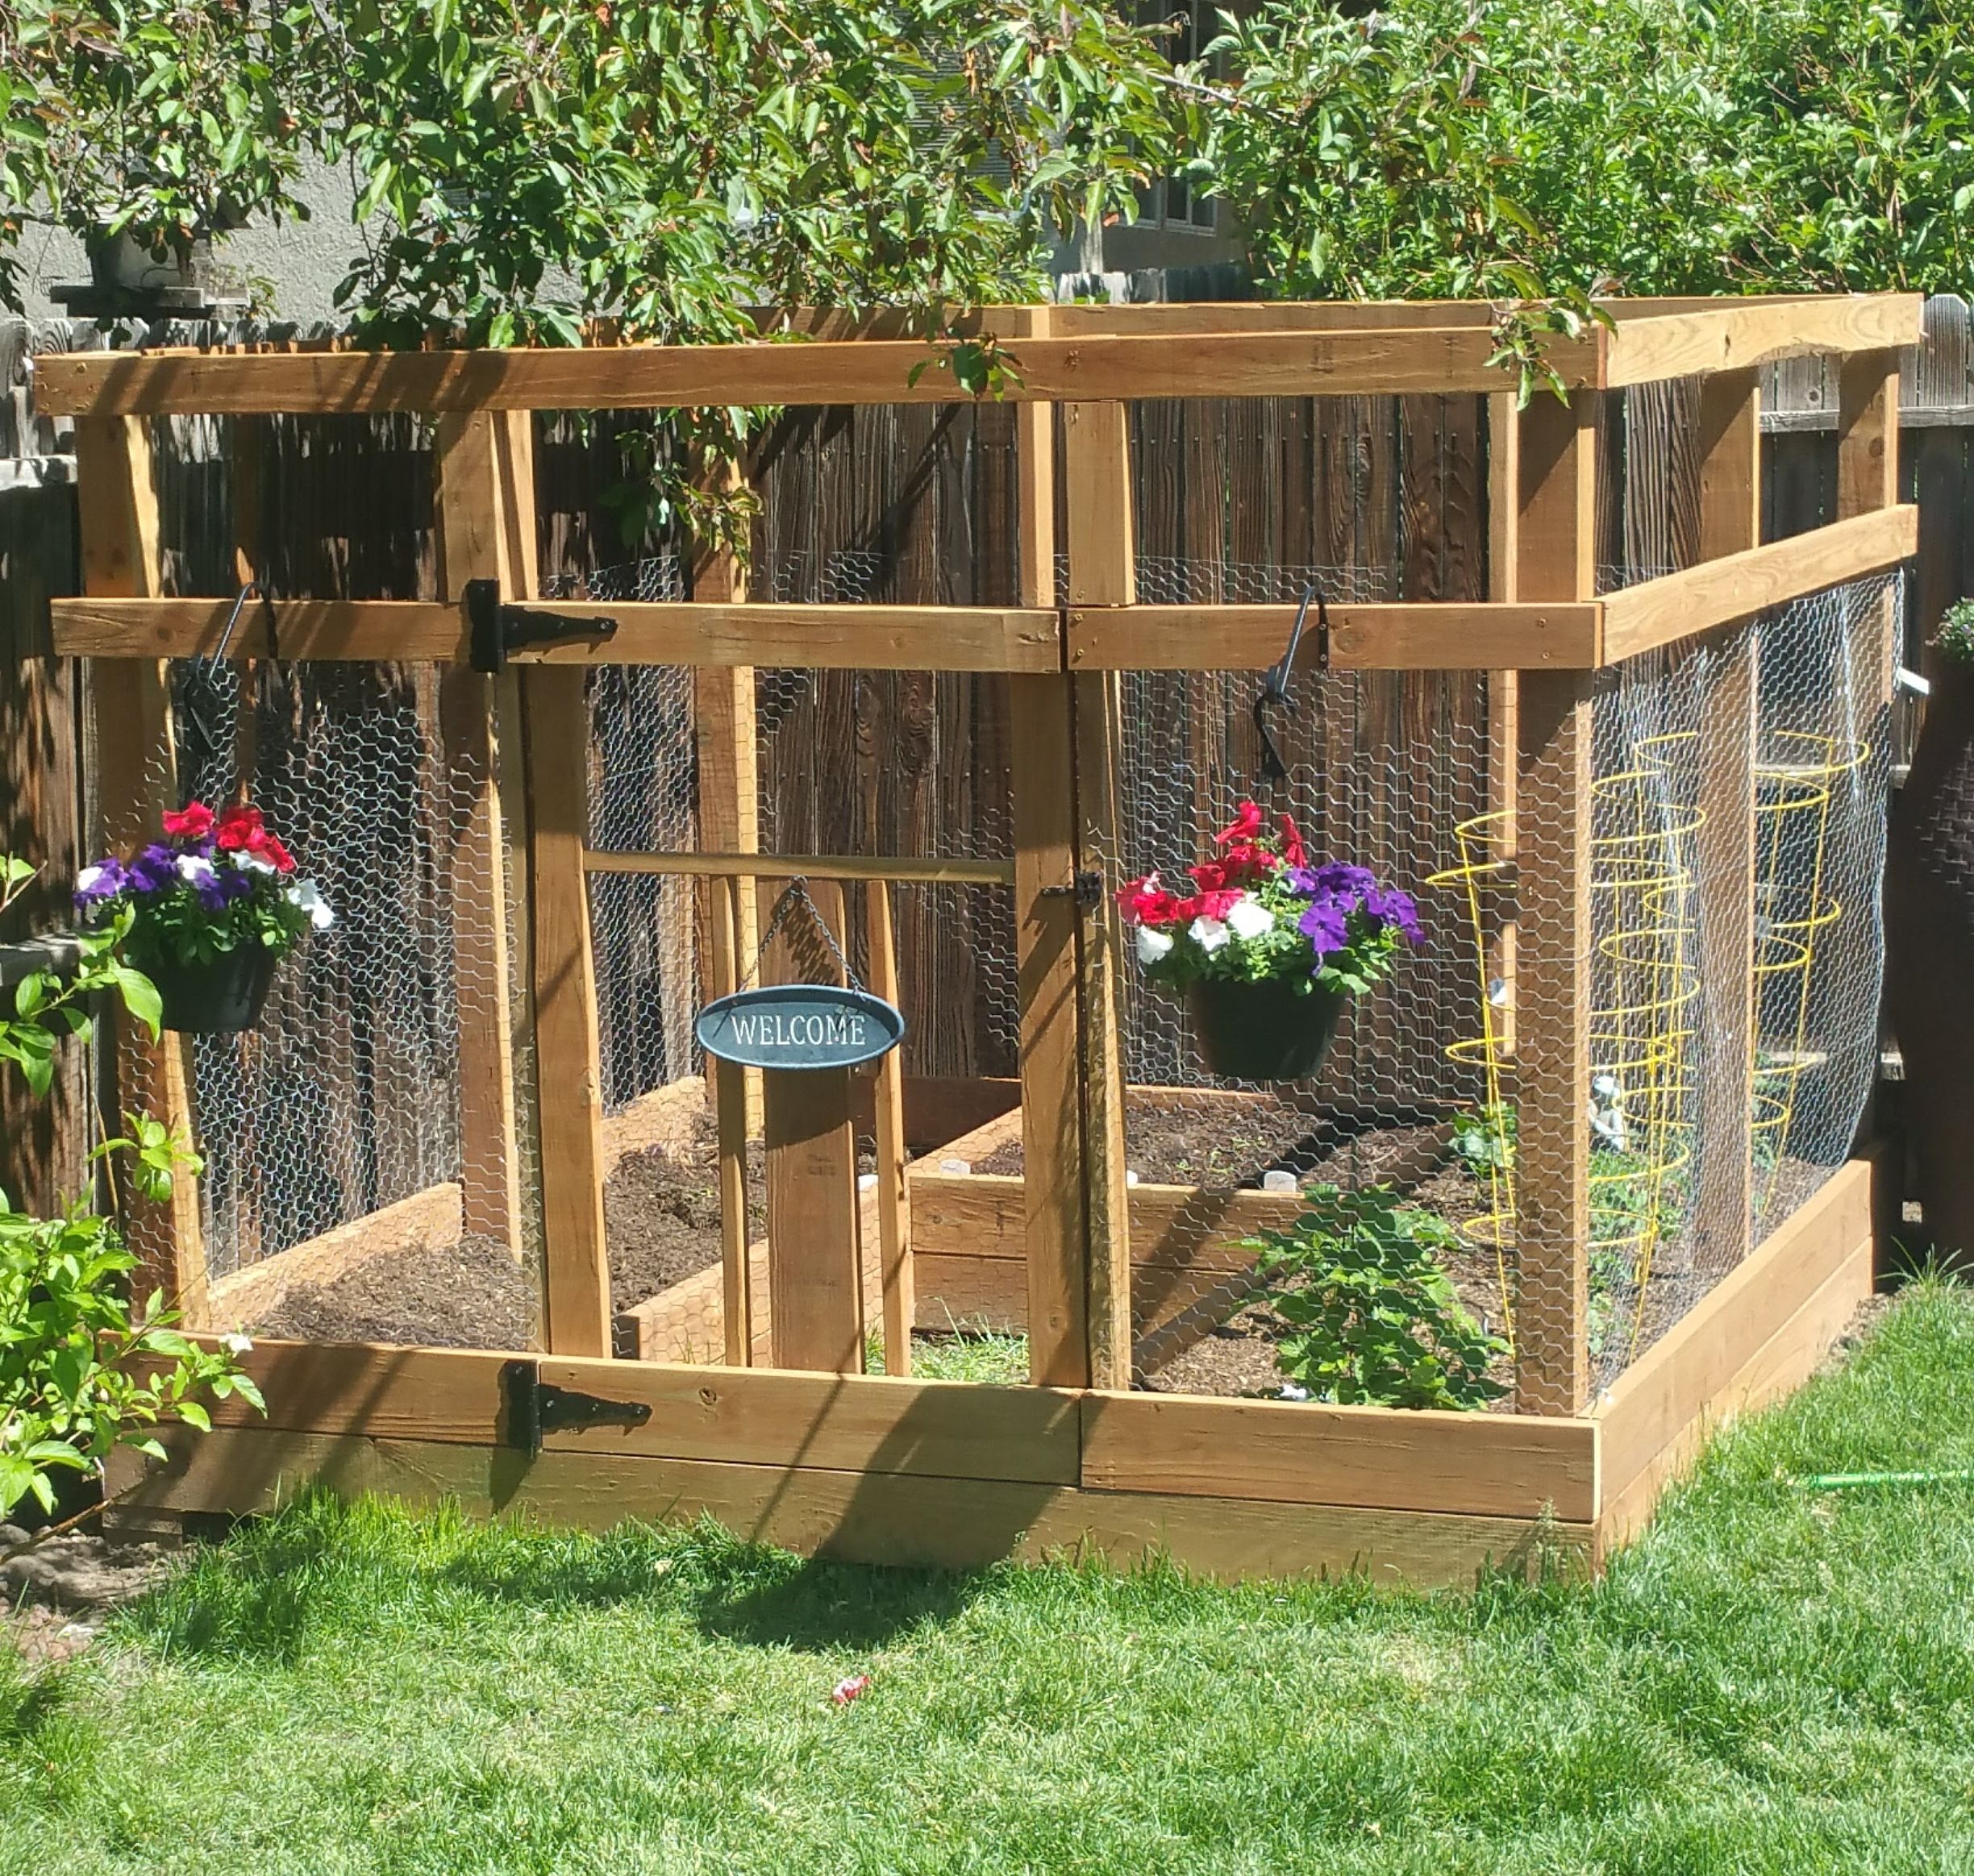 Garden Enclosure With Custom Gate - DIY